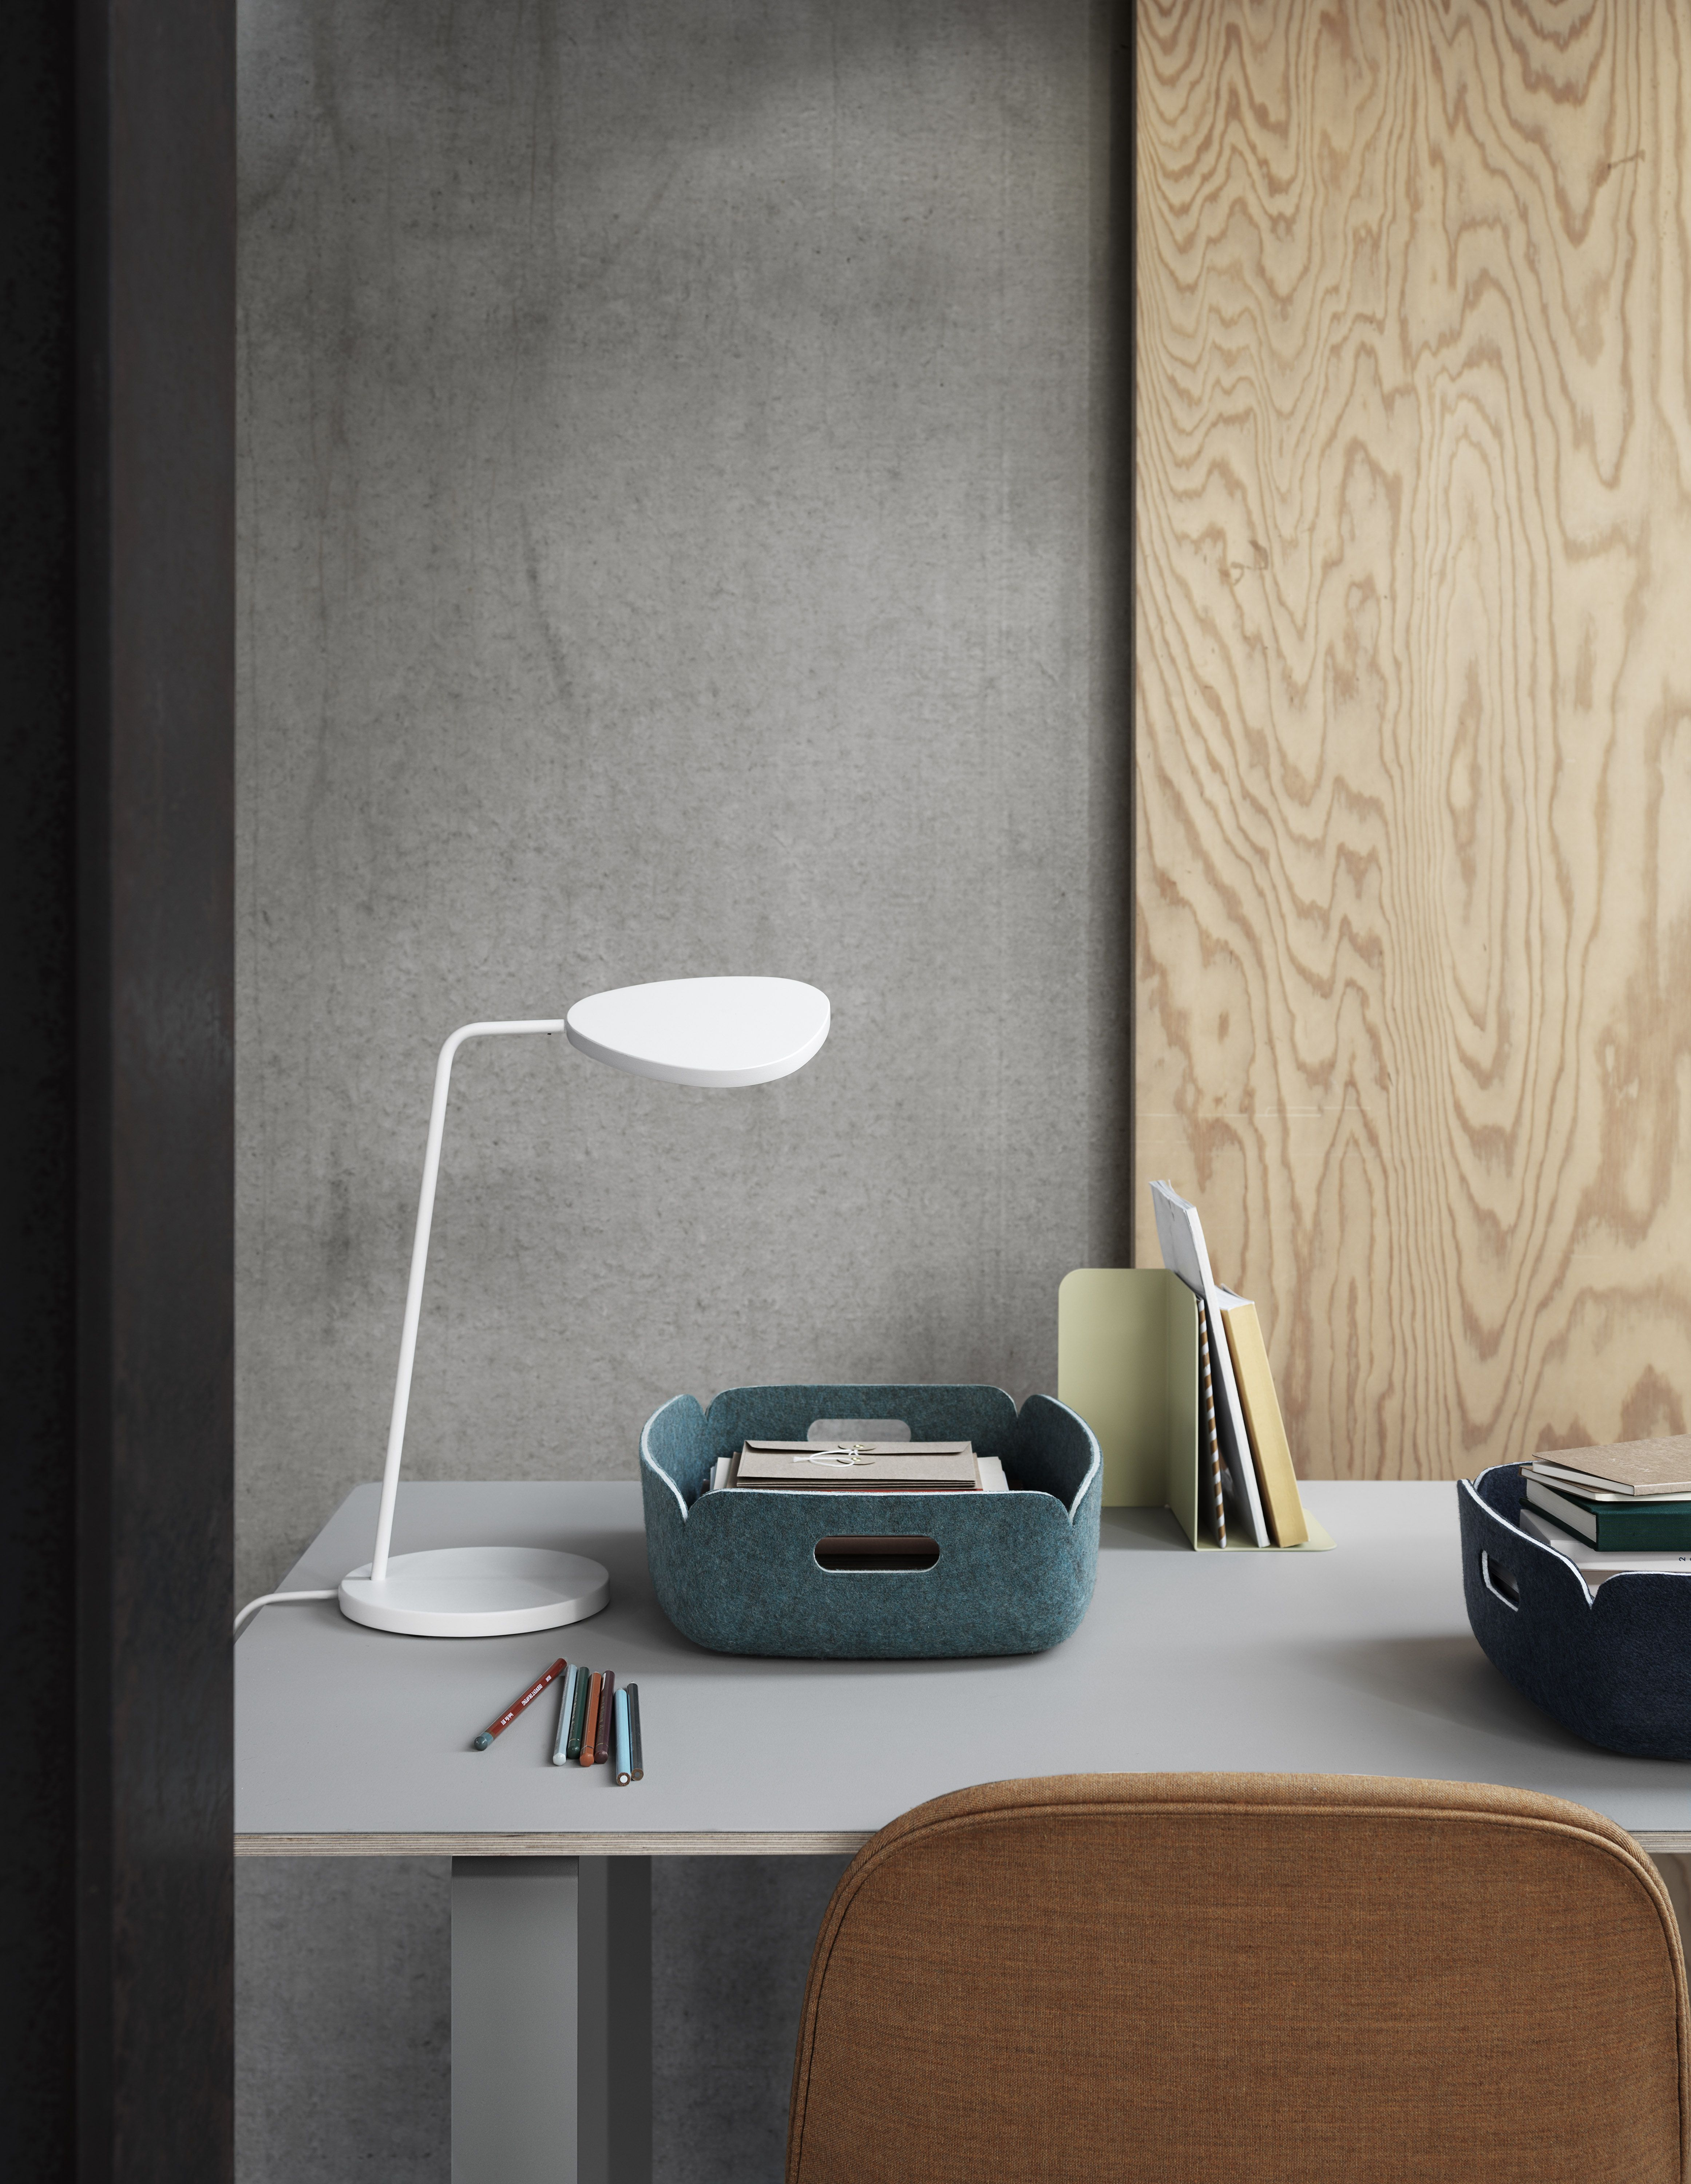 Scandinavian Interior Inspiration From Muuto A Sleek And Contemporary Addition To Any Home Or Professional Space The Leaf Tabl In 2020 Table Lamp Leaf Table Interior